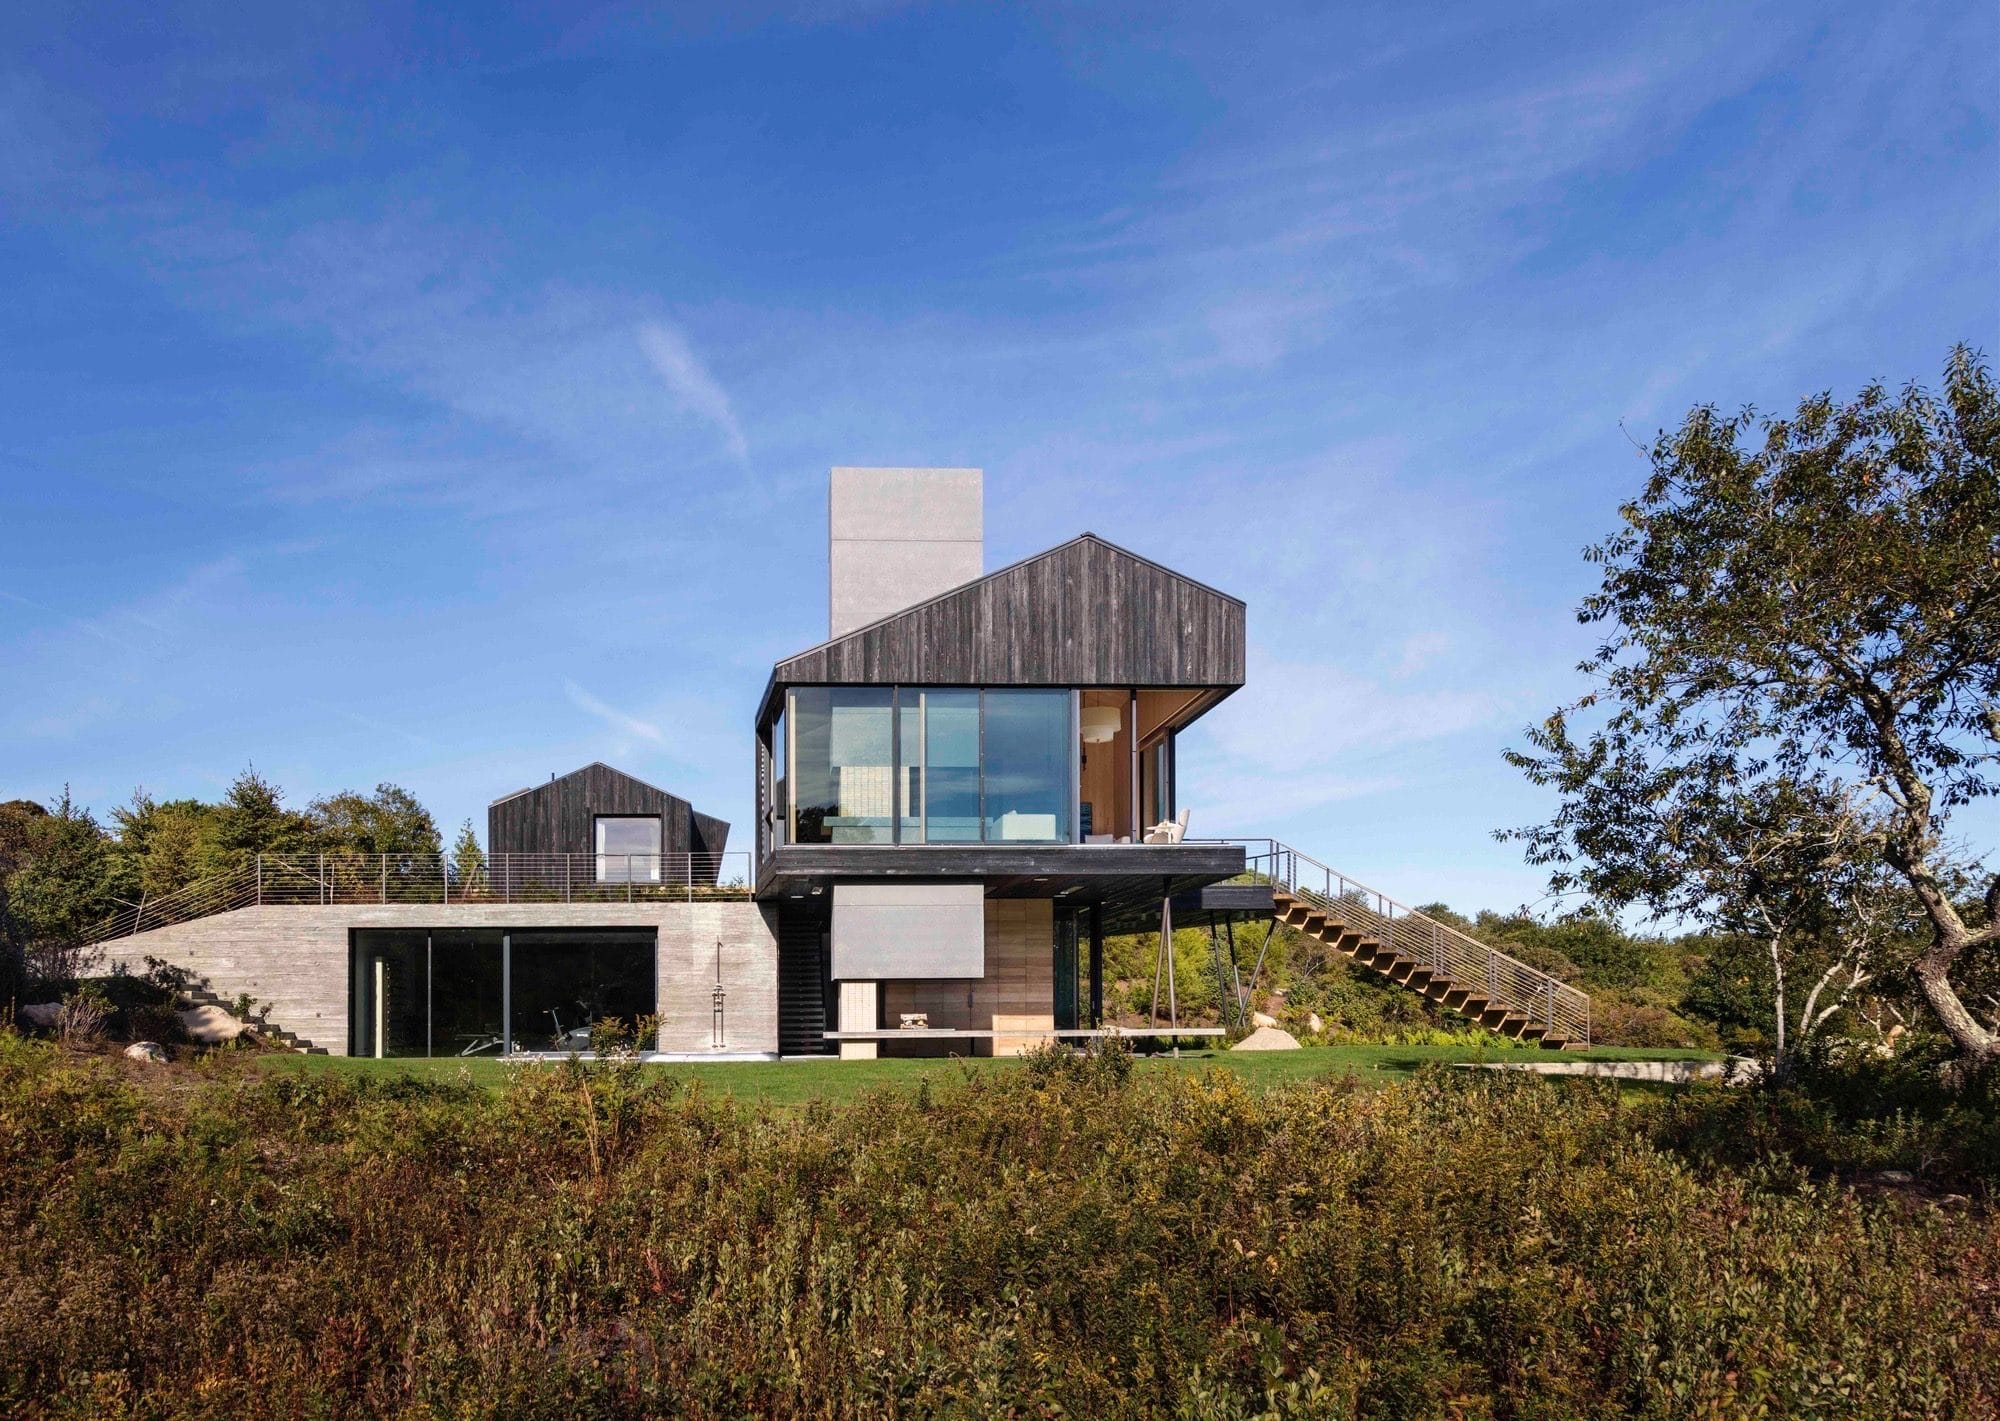 Дом – амбар Chilmark House на острове Мартас-Винъярд от Gray Organschi Architecture + Aaron Schiller, HQ architecture, HQarch, HQ arch, high quality architecture